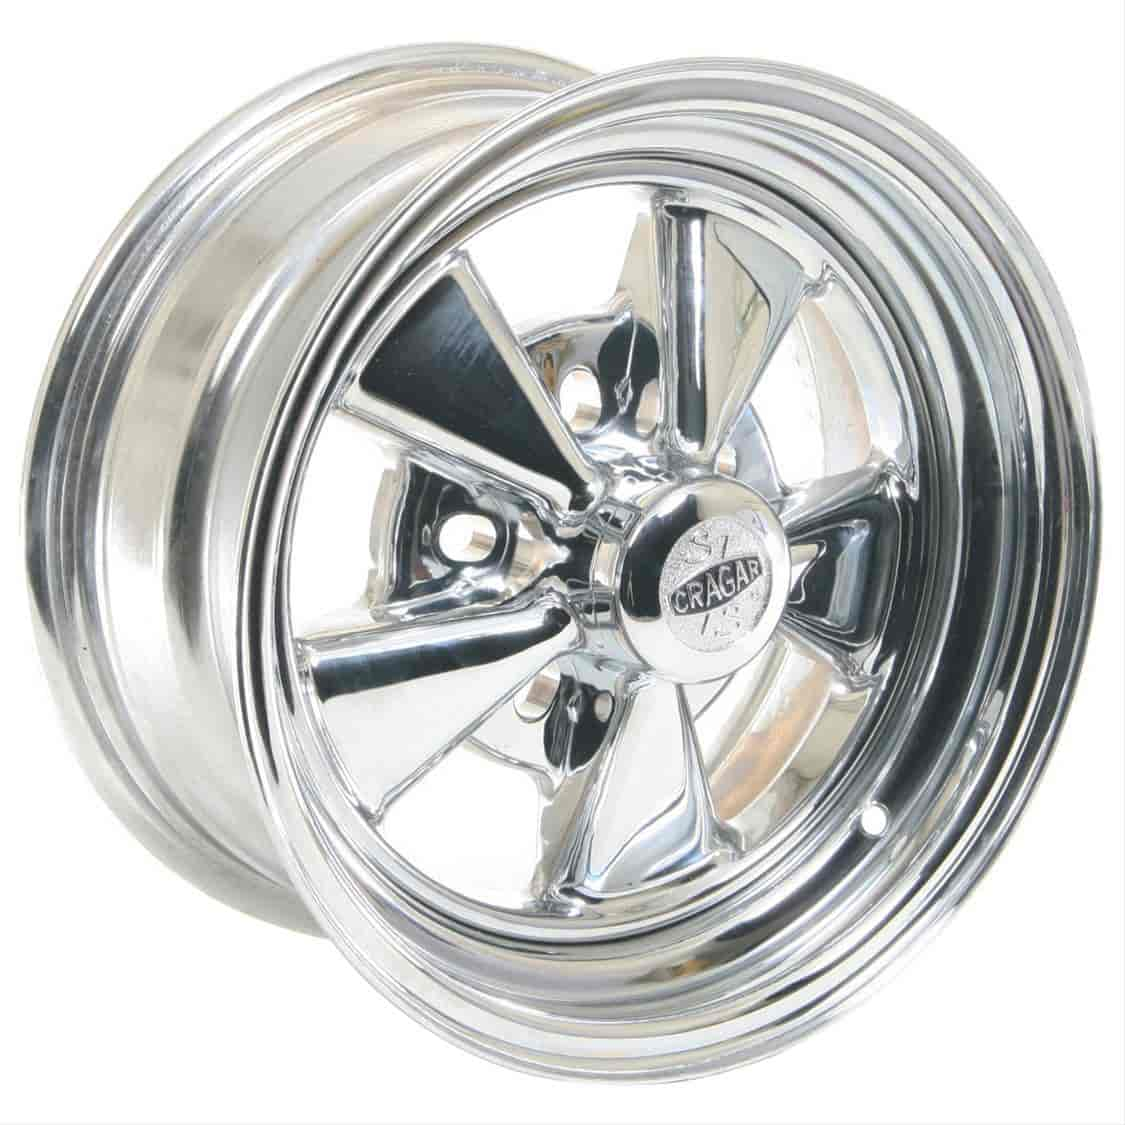 Cragar 61616 - Cragar 08/61 Series S/S Super Sport Wheels